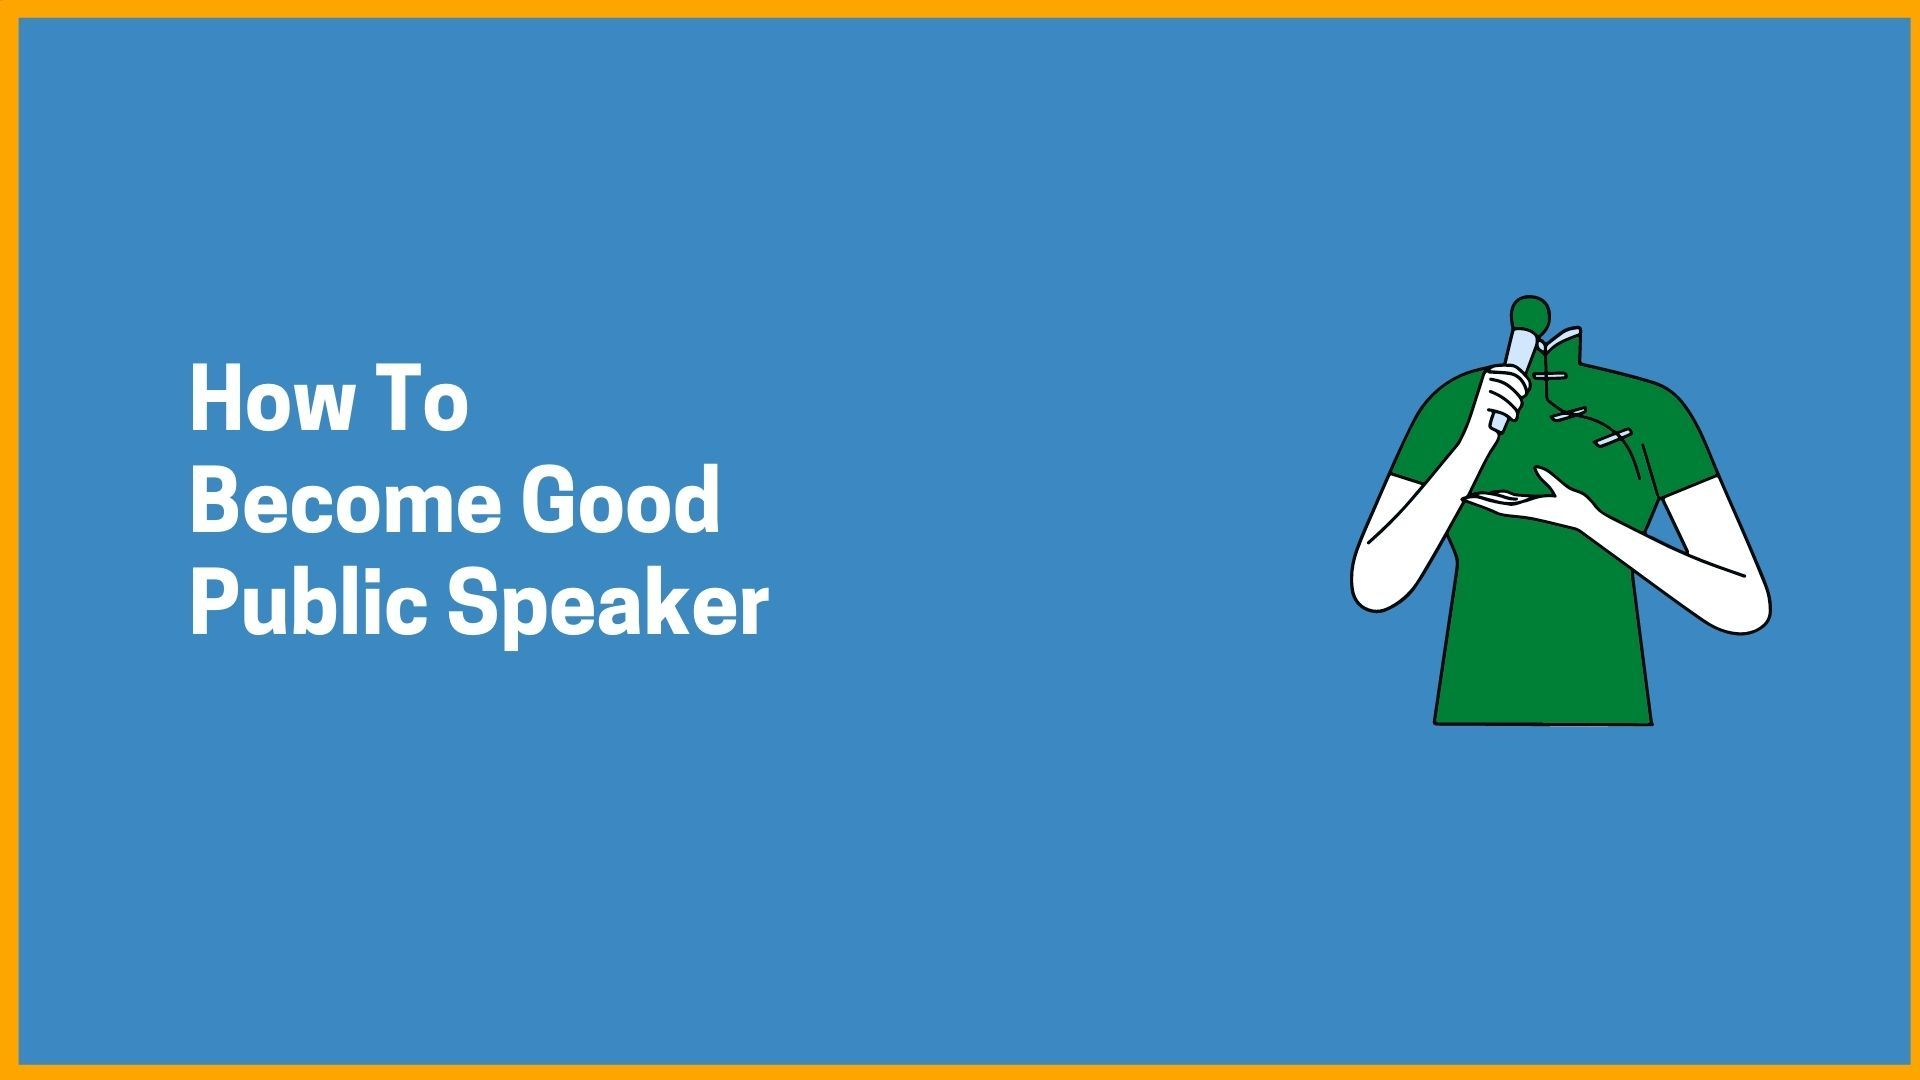 How To Become Good Public Speaker